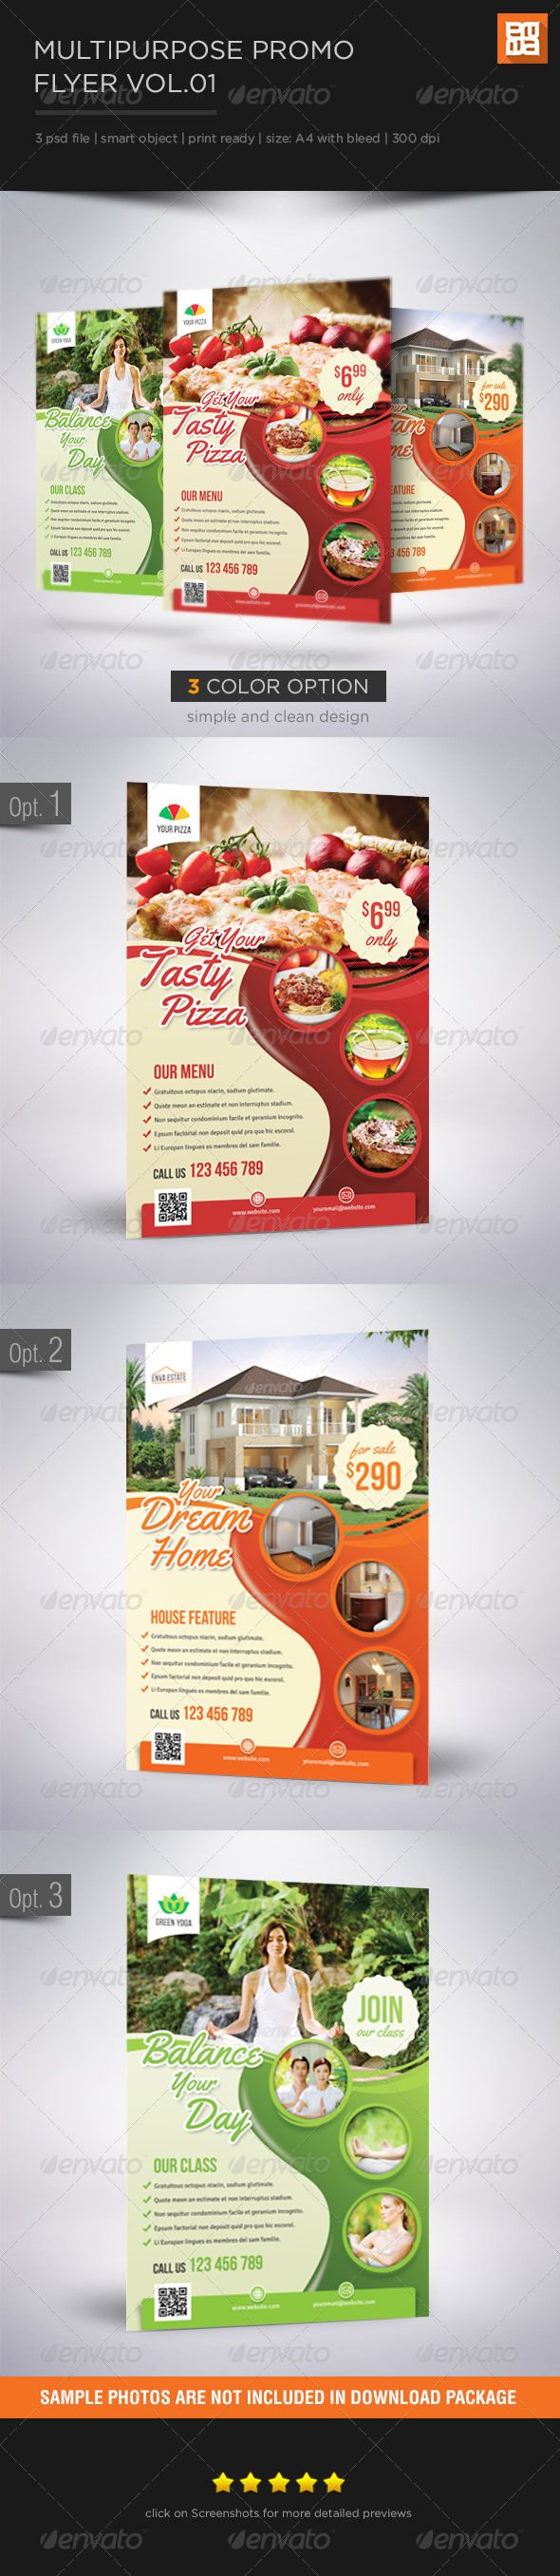 Multipurpose Promo Flyer Template PSD | Buy and Download: http://graphicriver.net/item/multipurpose-promo-flyer-vol-01/6528598?WT.ac=category_thumb&WT.z_author=aan_designer&ref=ksioks